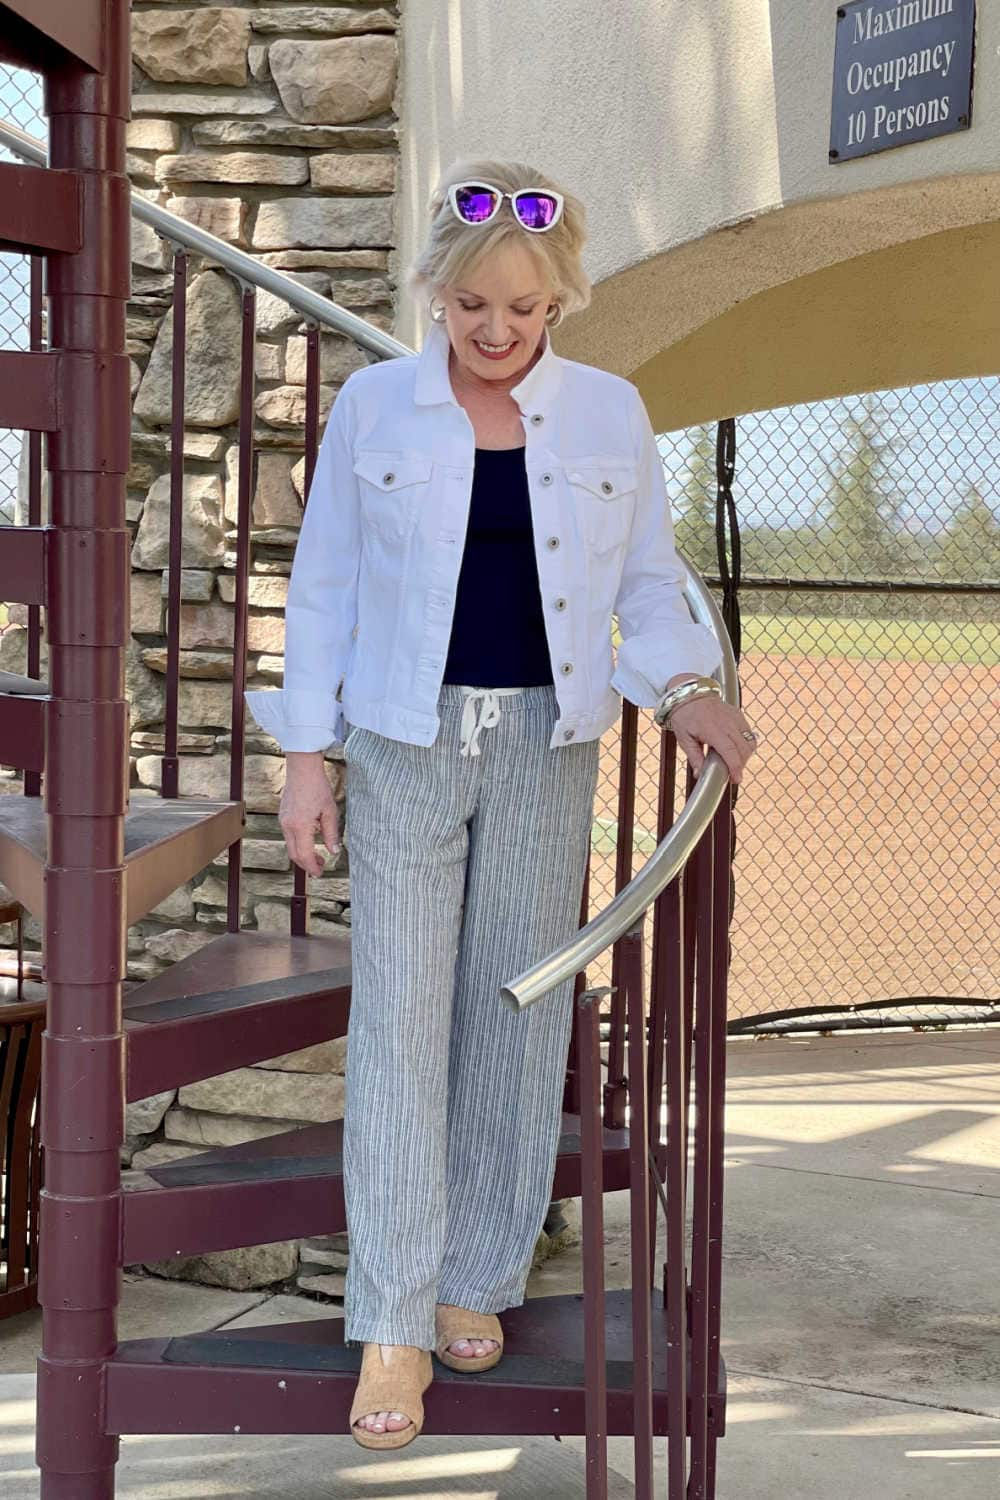 blonde woman walking down spiral staircase wearing white jacket, striped pants and cork wedges